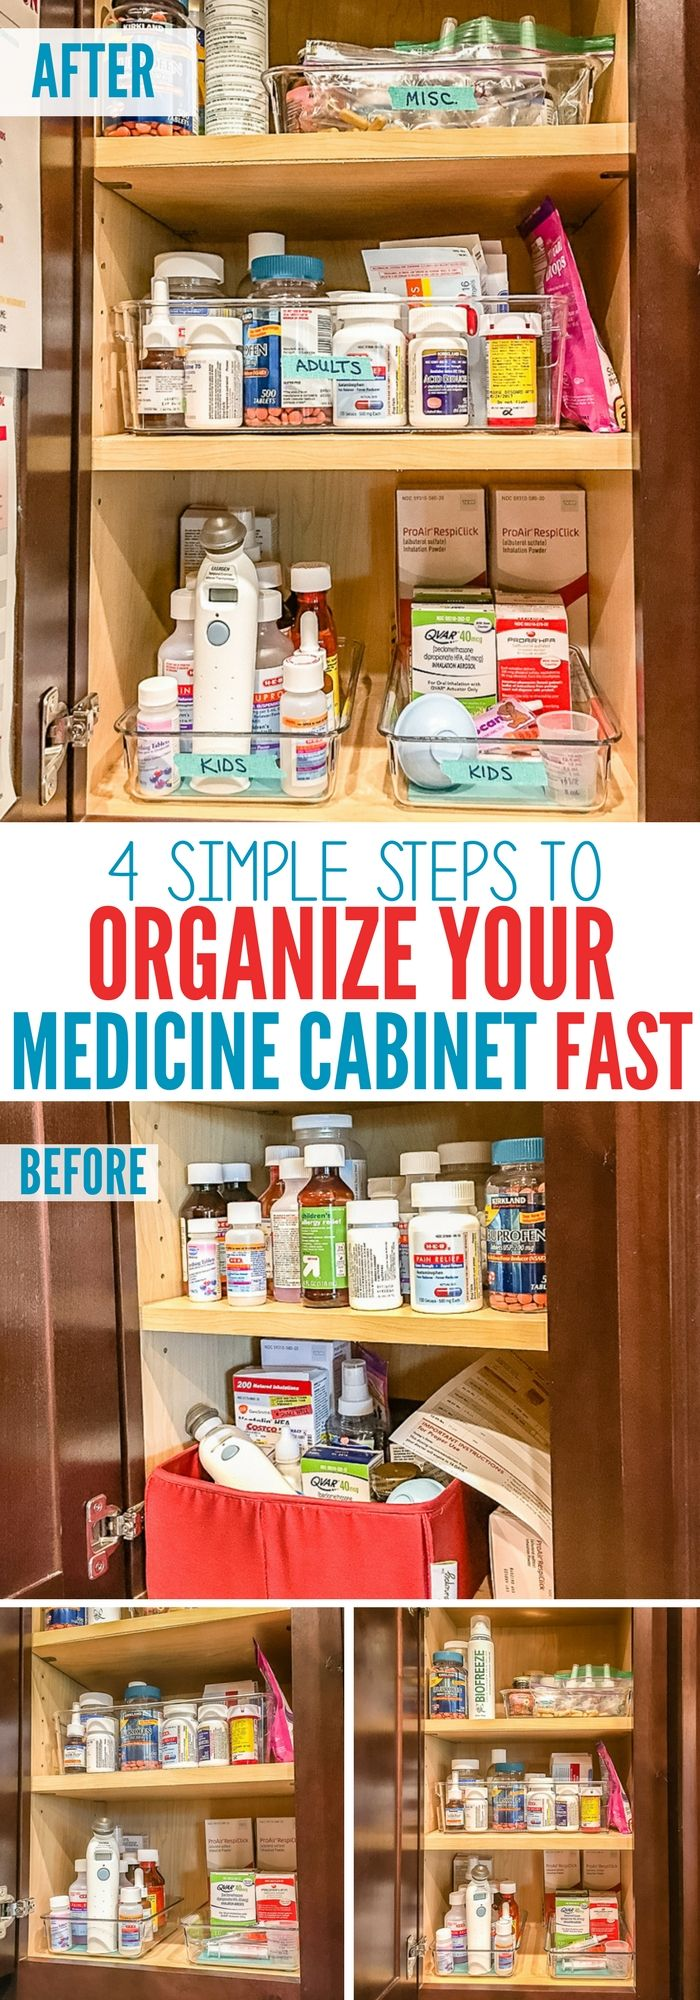 Tired of not being able to find what you need late at night when you have a sick child? Here are 4 simple steps to organizing your medicine cabinet QUICKLY and easily! Plus a fun DIY idea for the inside of your cabinet!